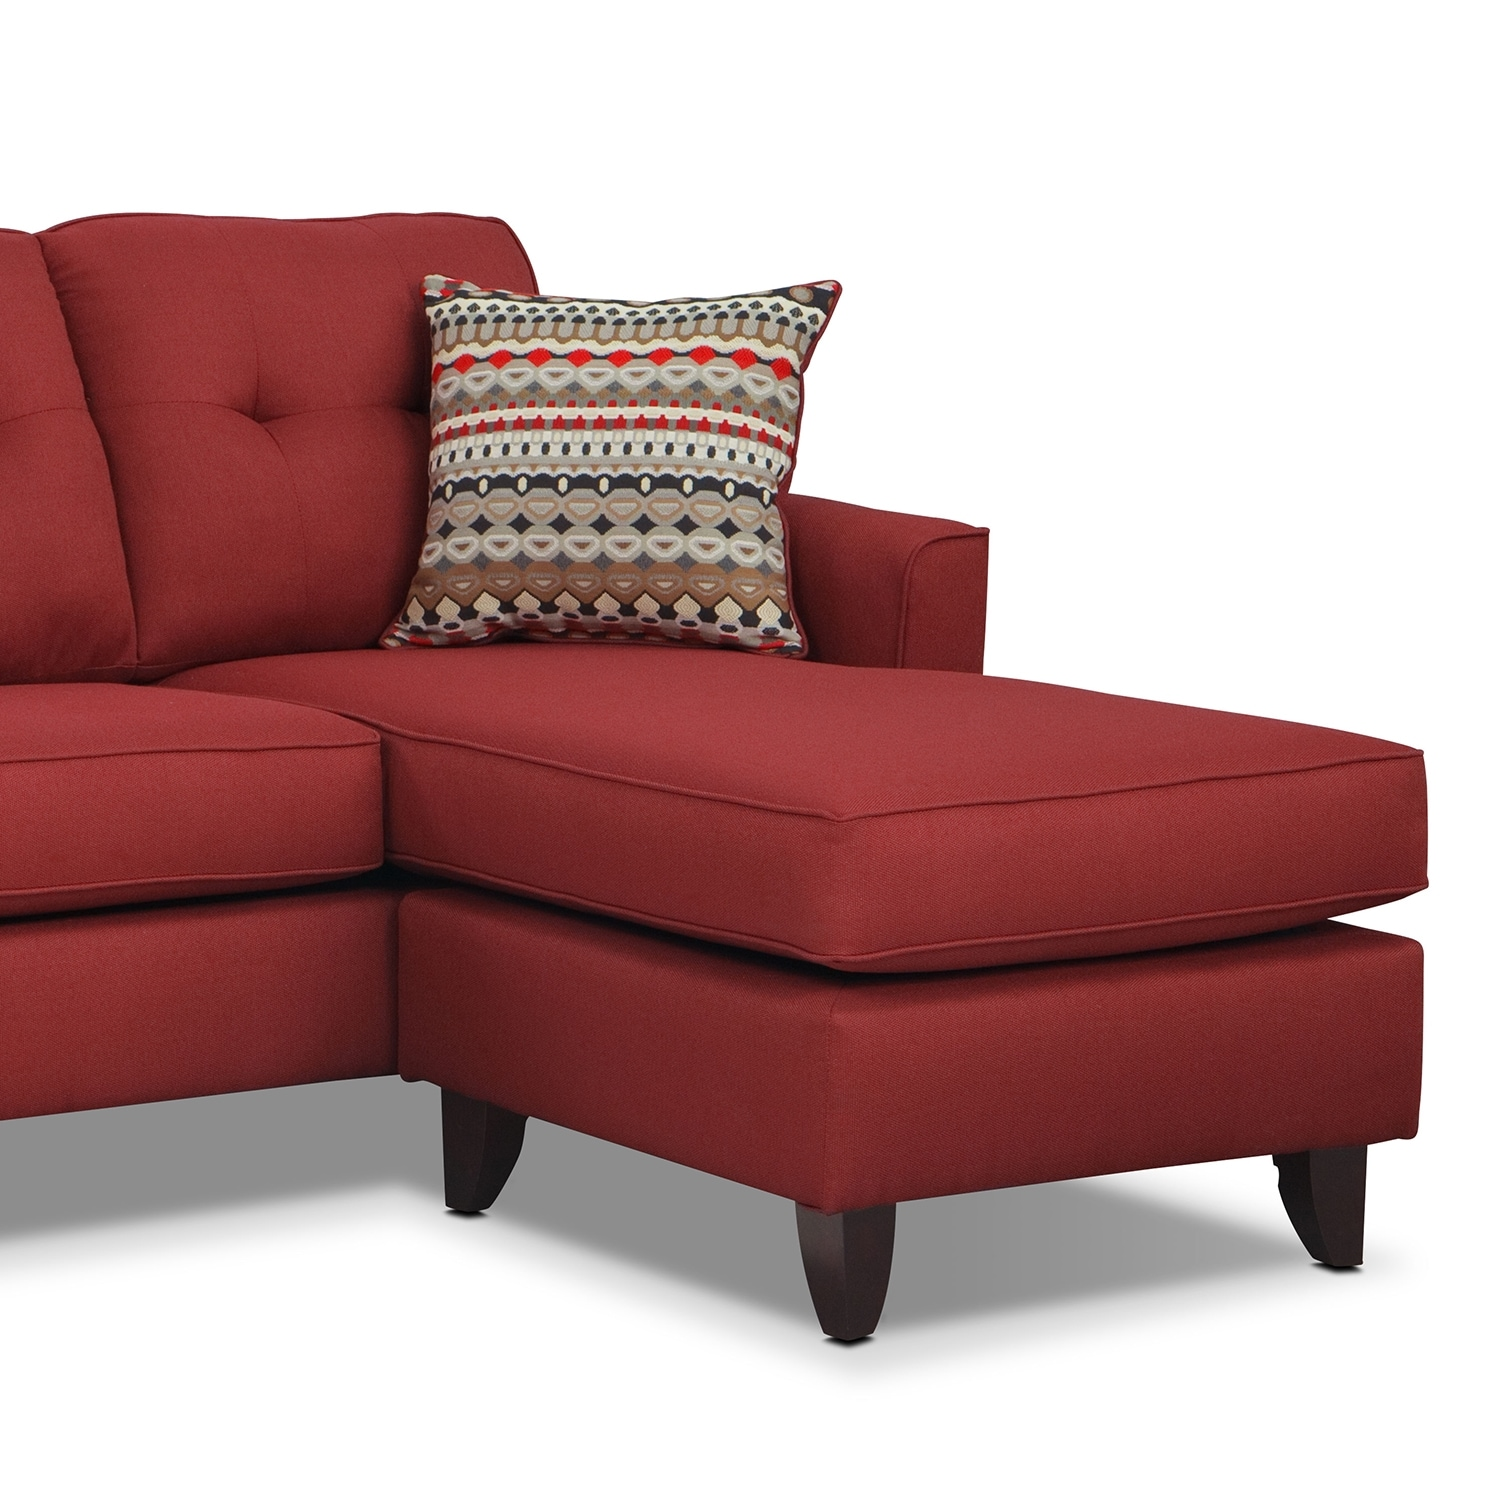 value city furniture marco chaise sofa murphy 3 seater dfs red